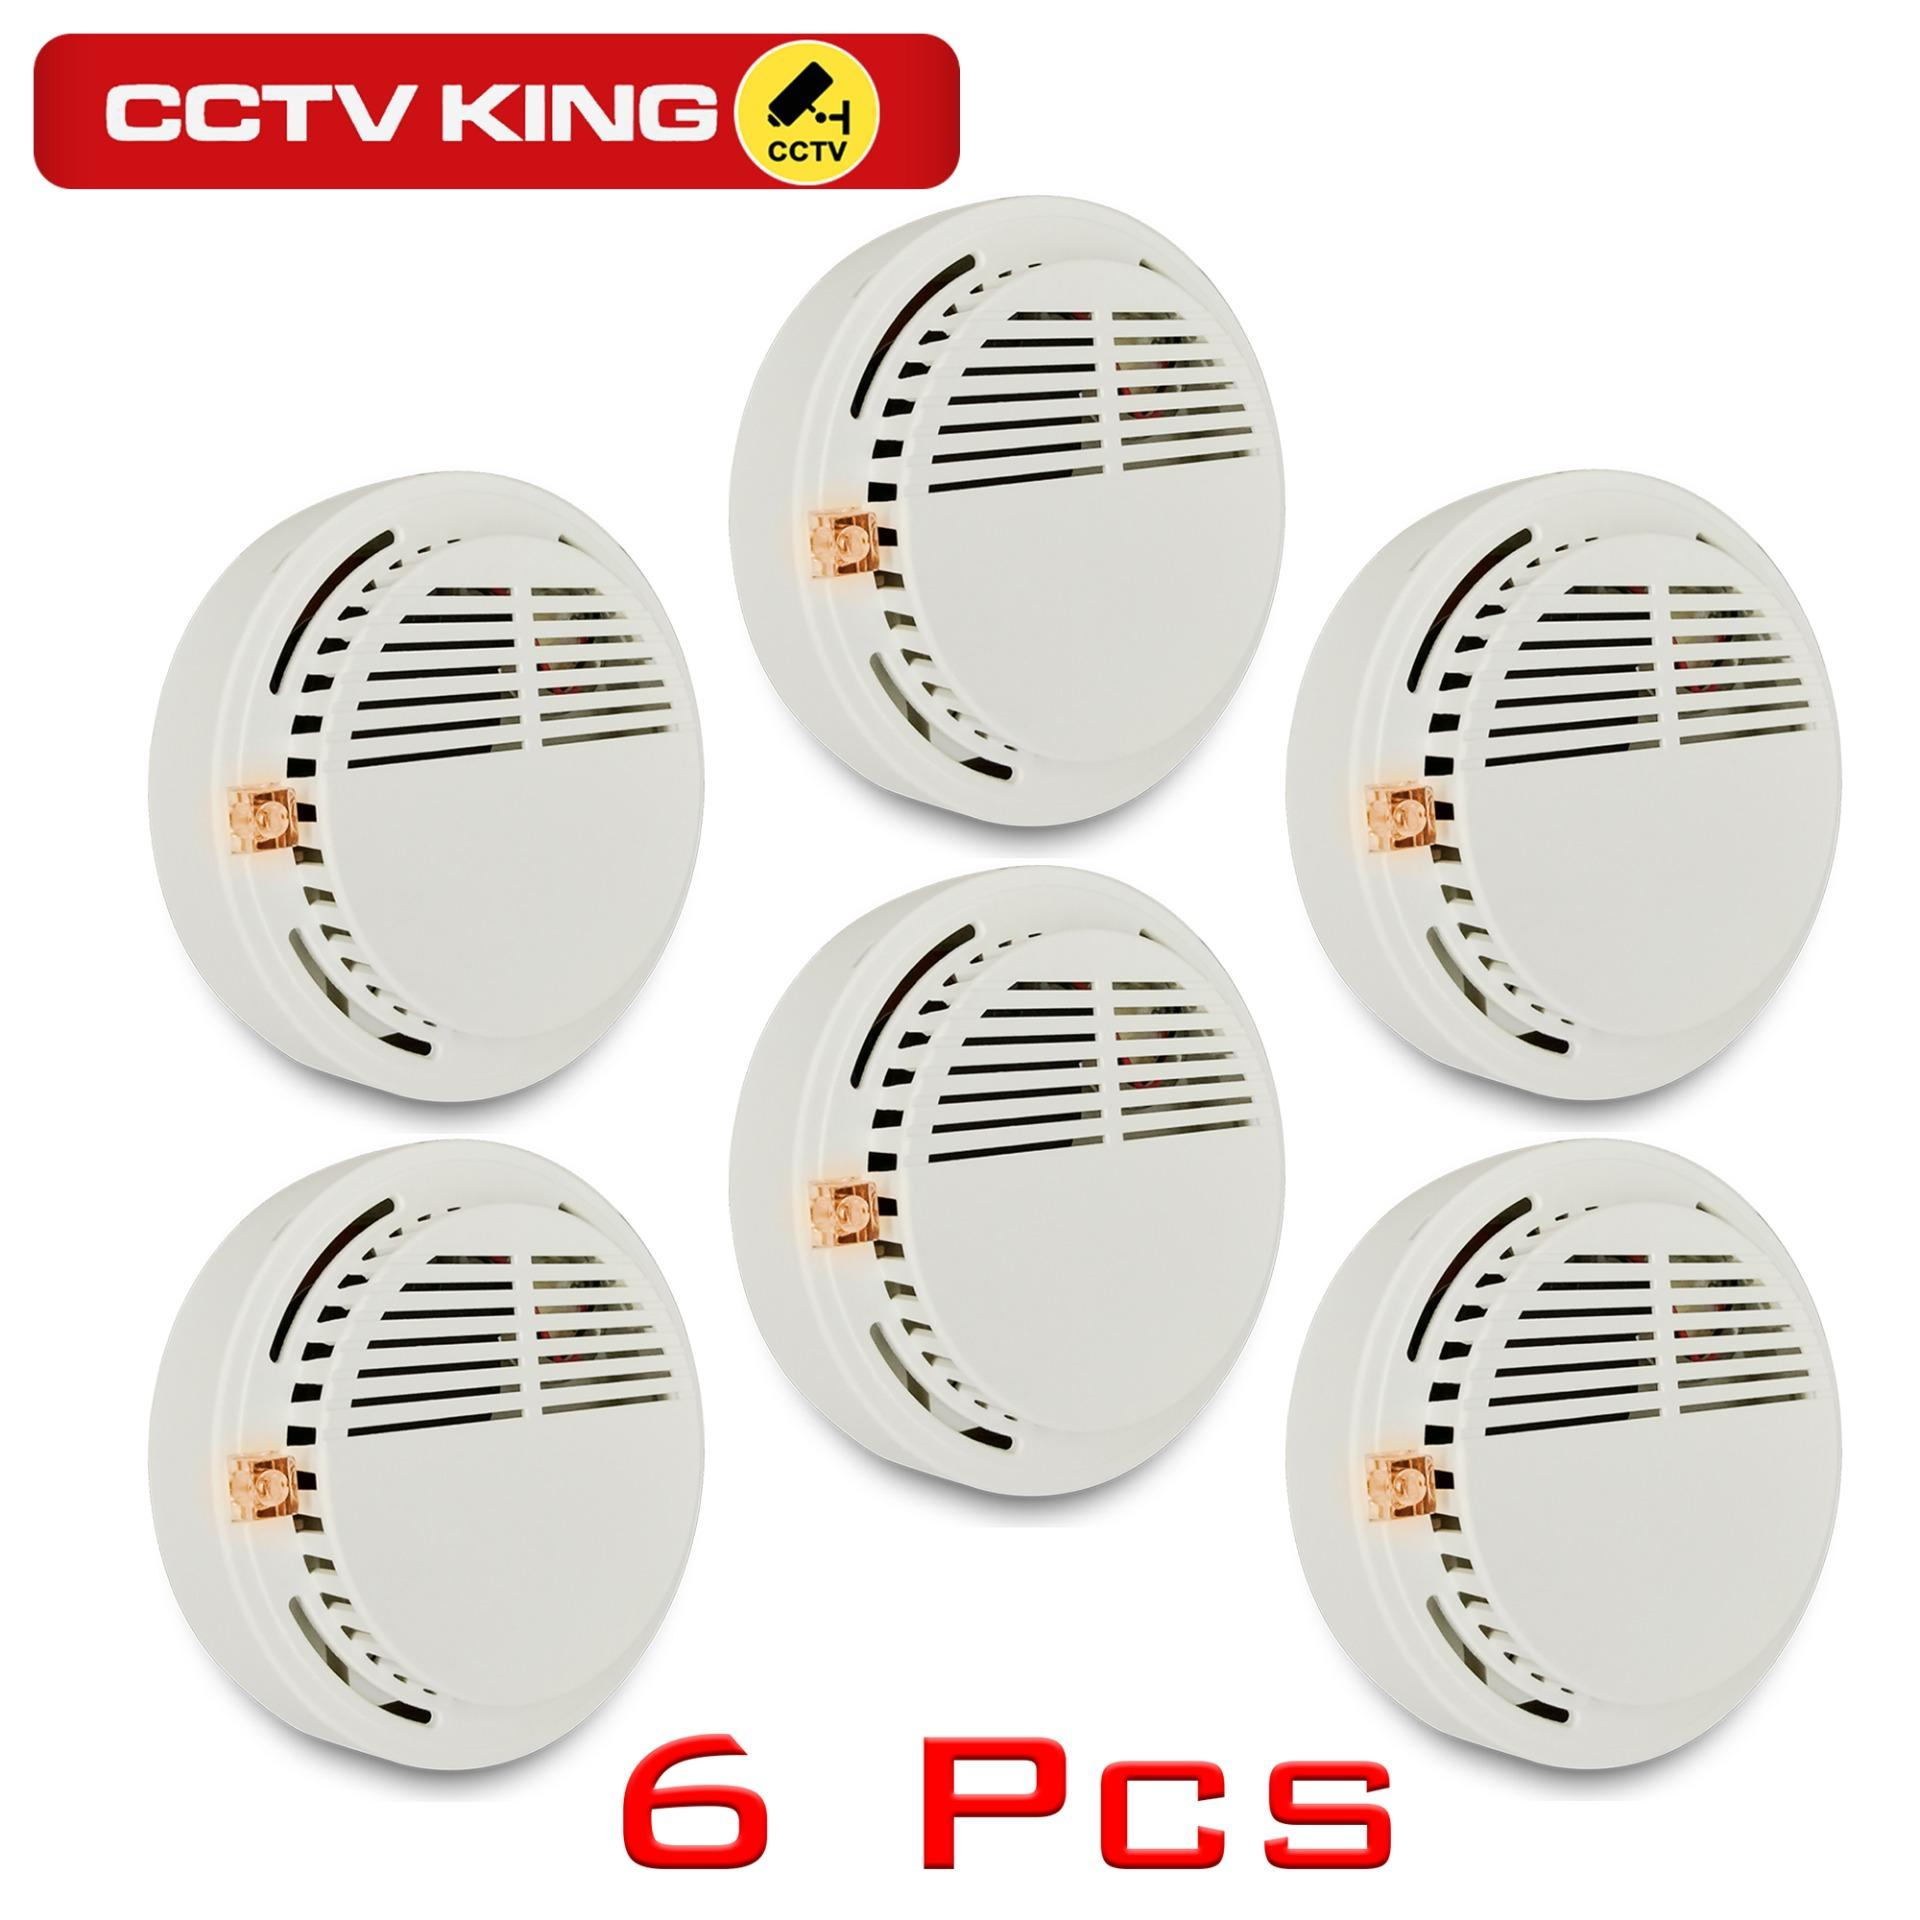 Home Security For Sale House Alarm Prices Brands Review In Remote Smoke Detector Circuit Schematic Fire Indoor System 9v Wireless Battery Operated